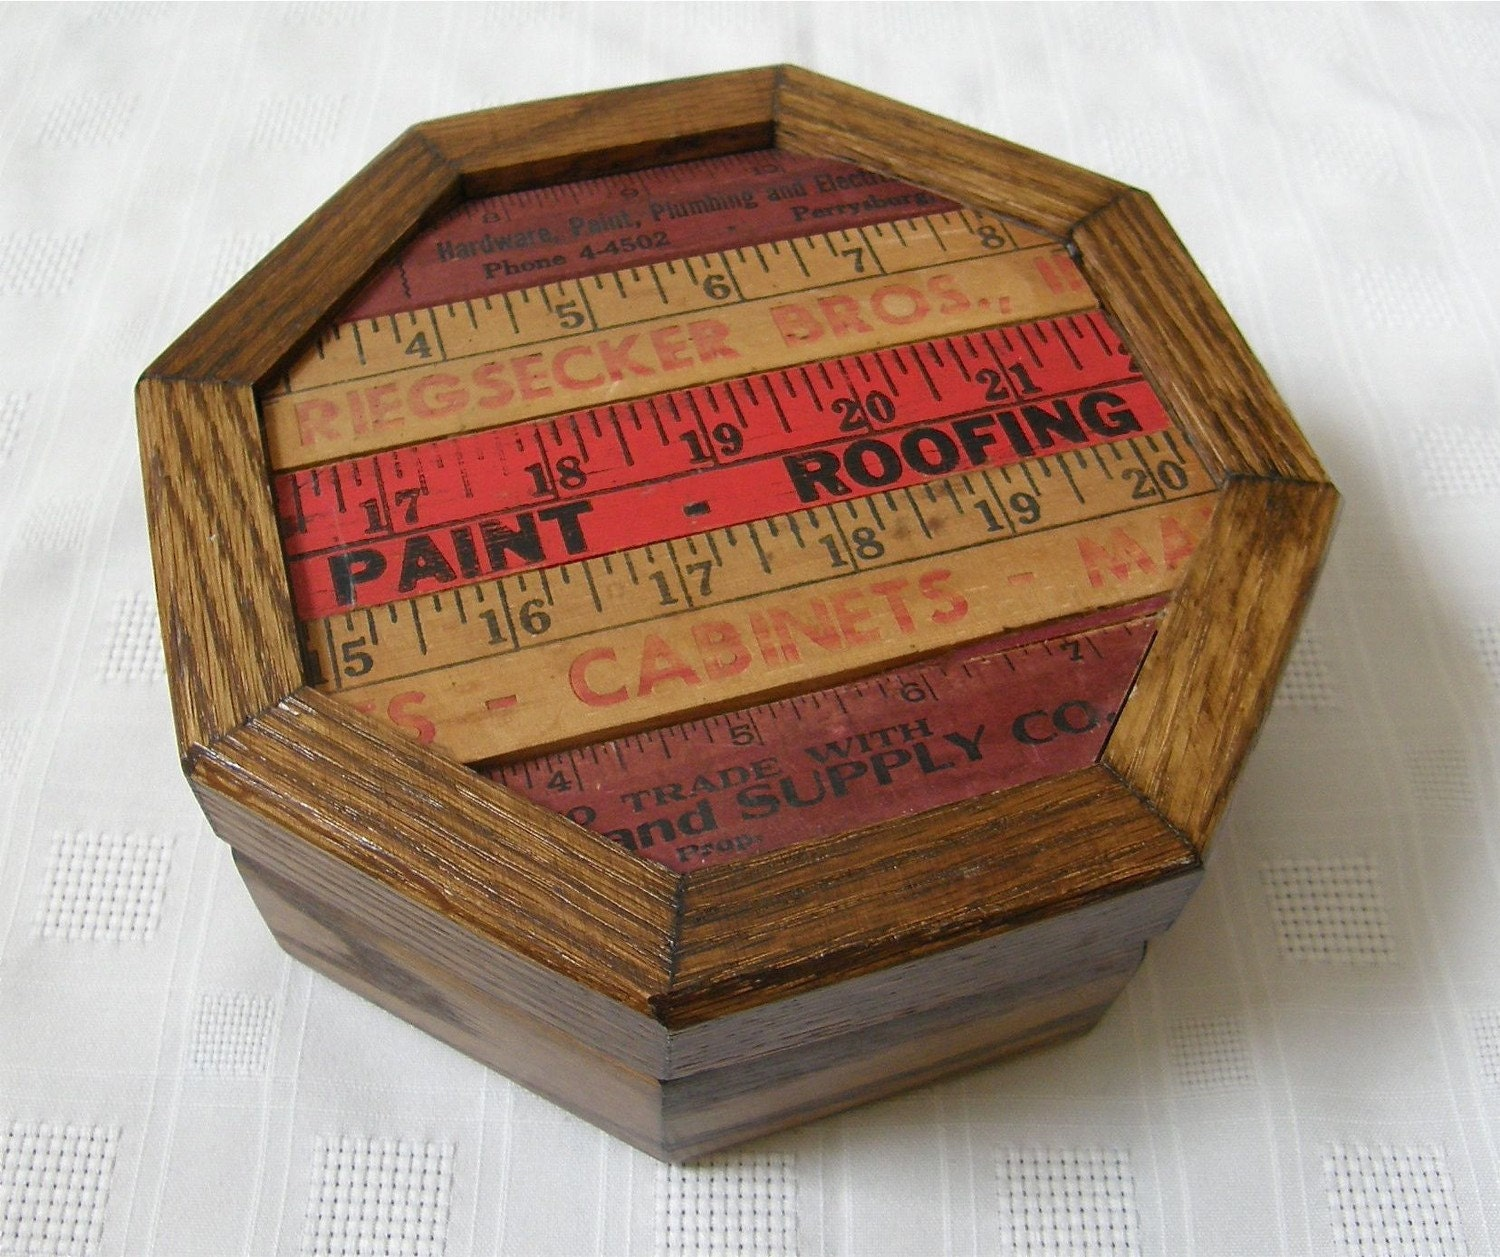 Upcycled Box, Wood, Desk, Organizer, Vintage Ruler, Found Object by MalcolmStudioShop on Etsy